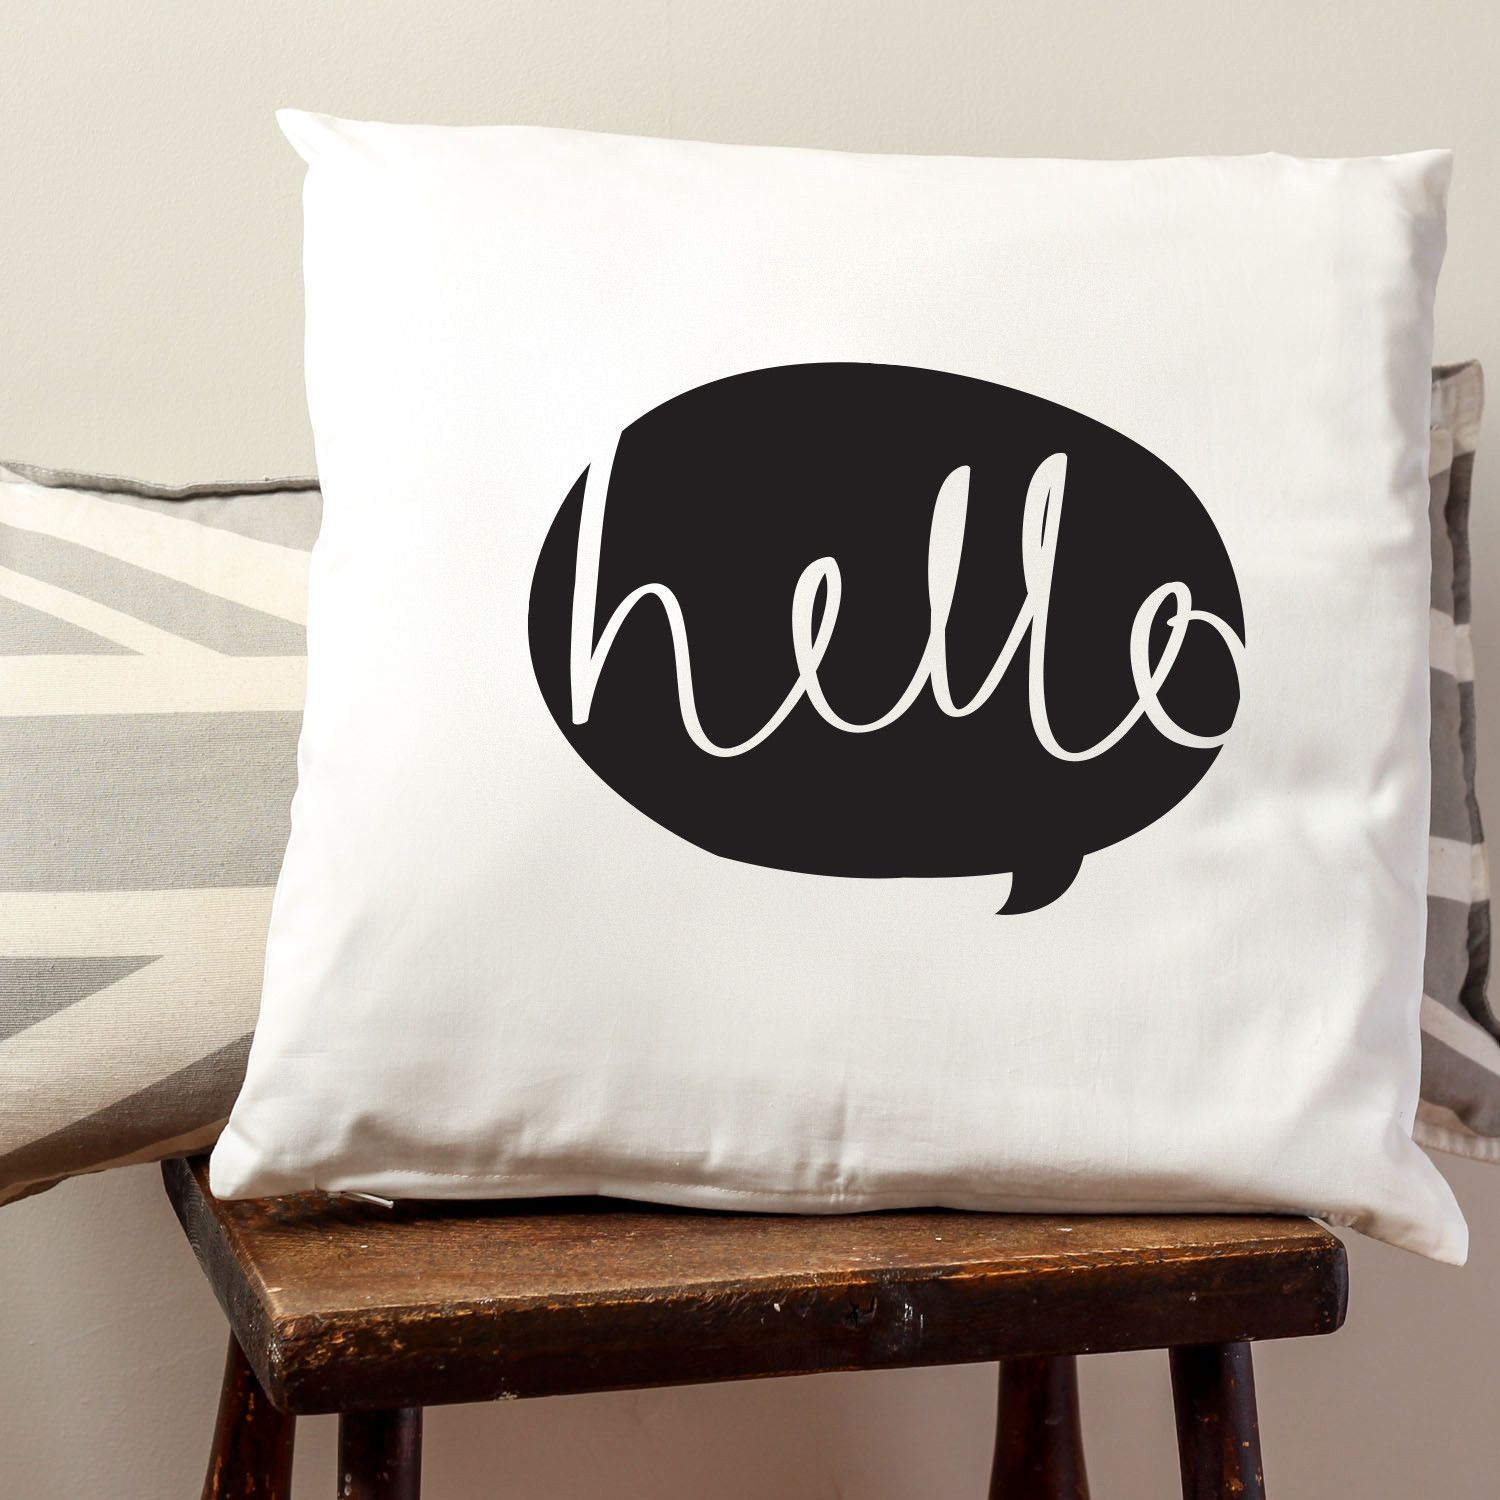 Letter cushion HELLO CUSHION COVER Old